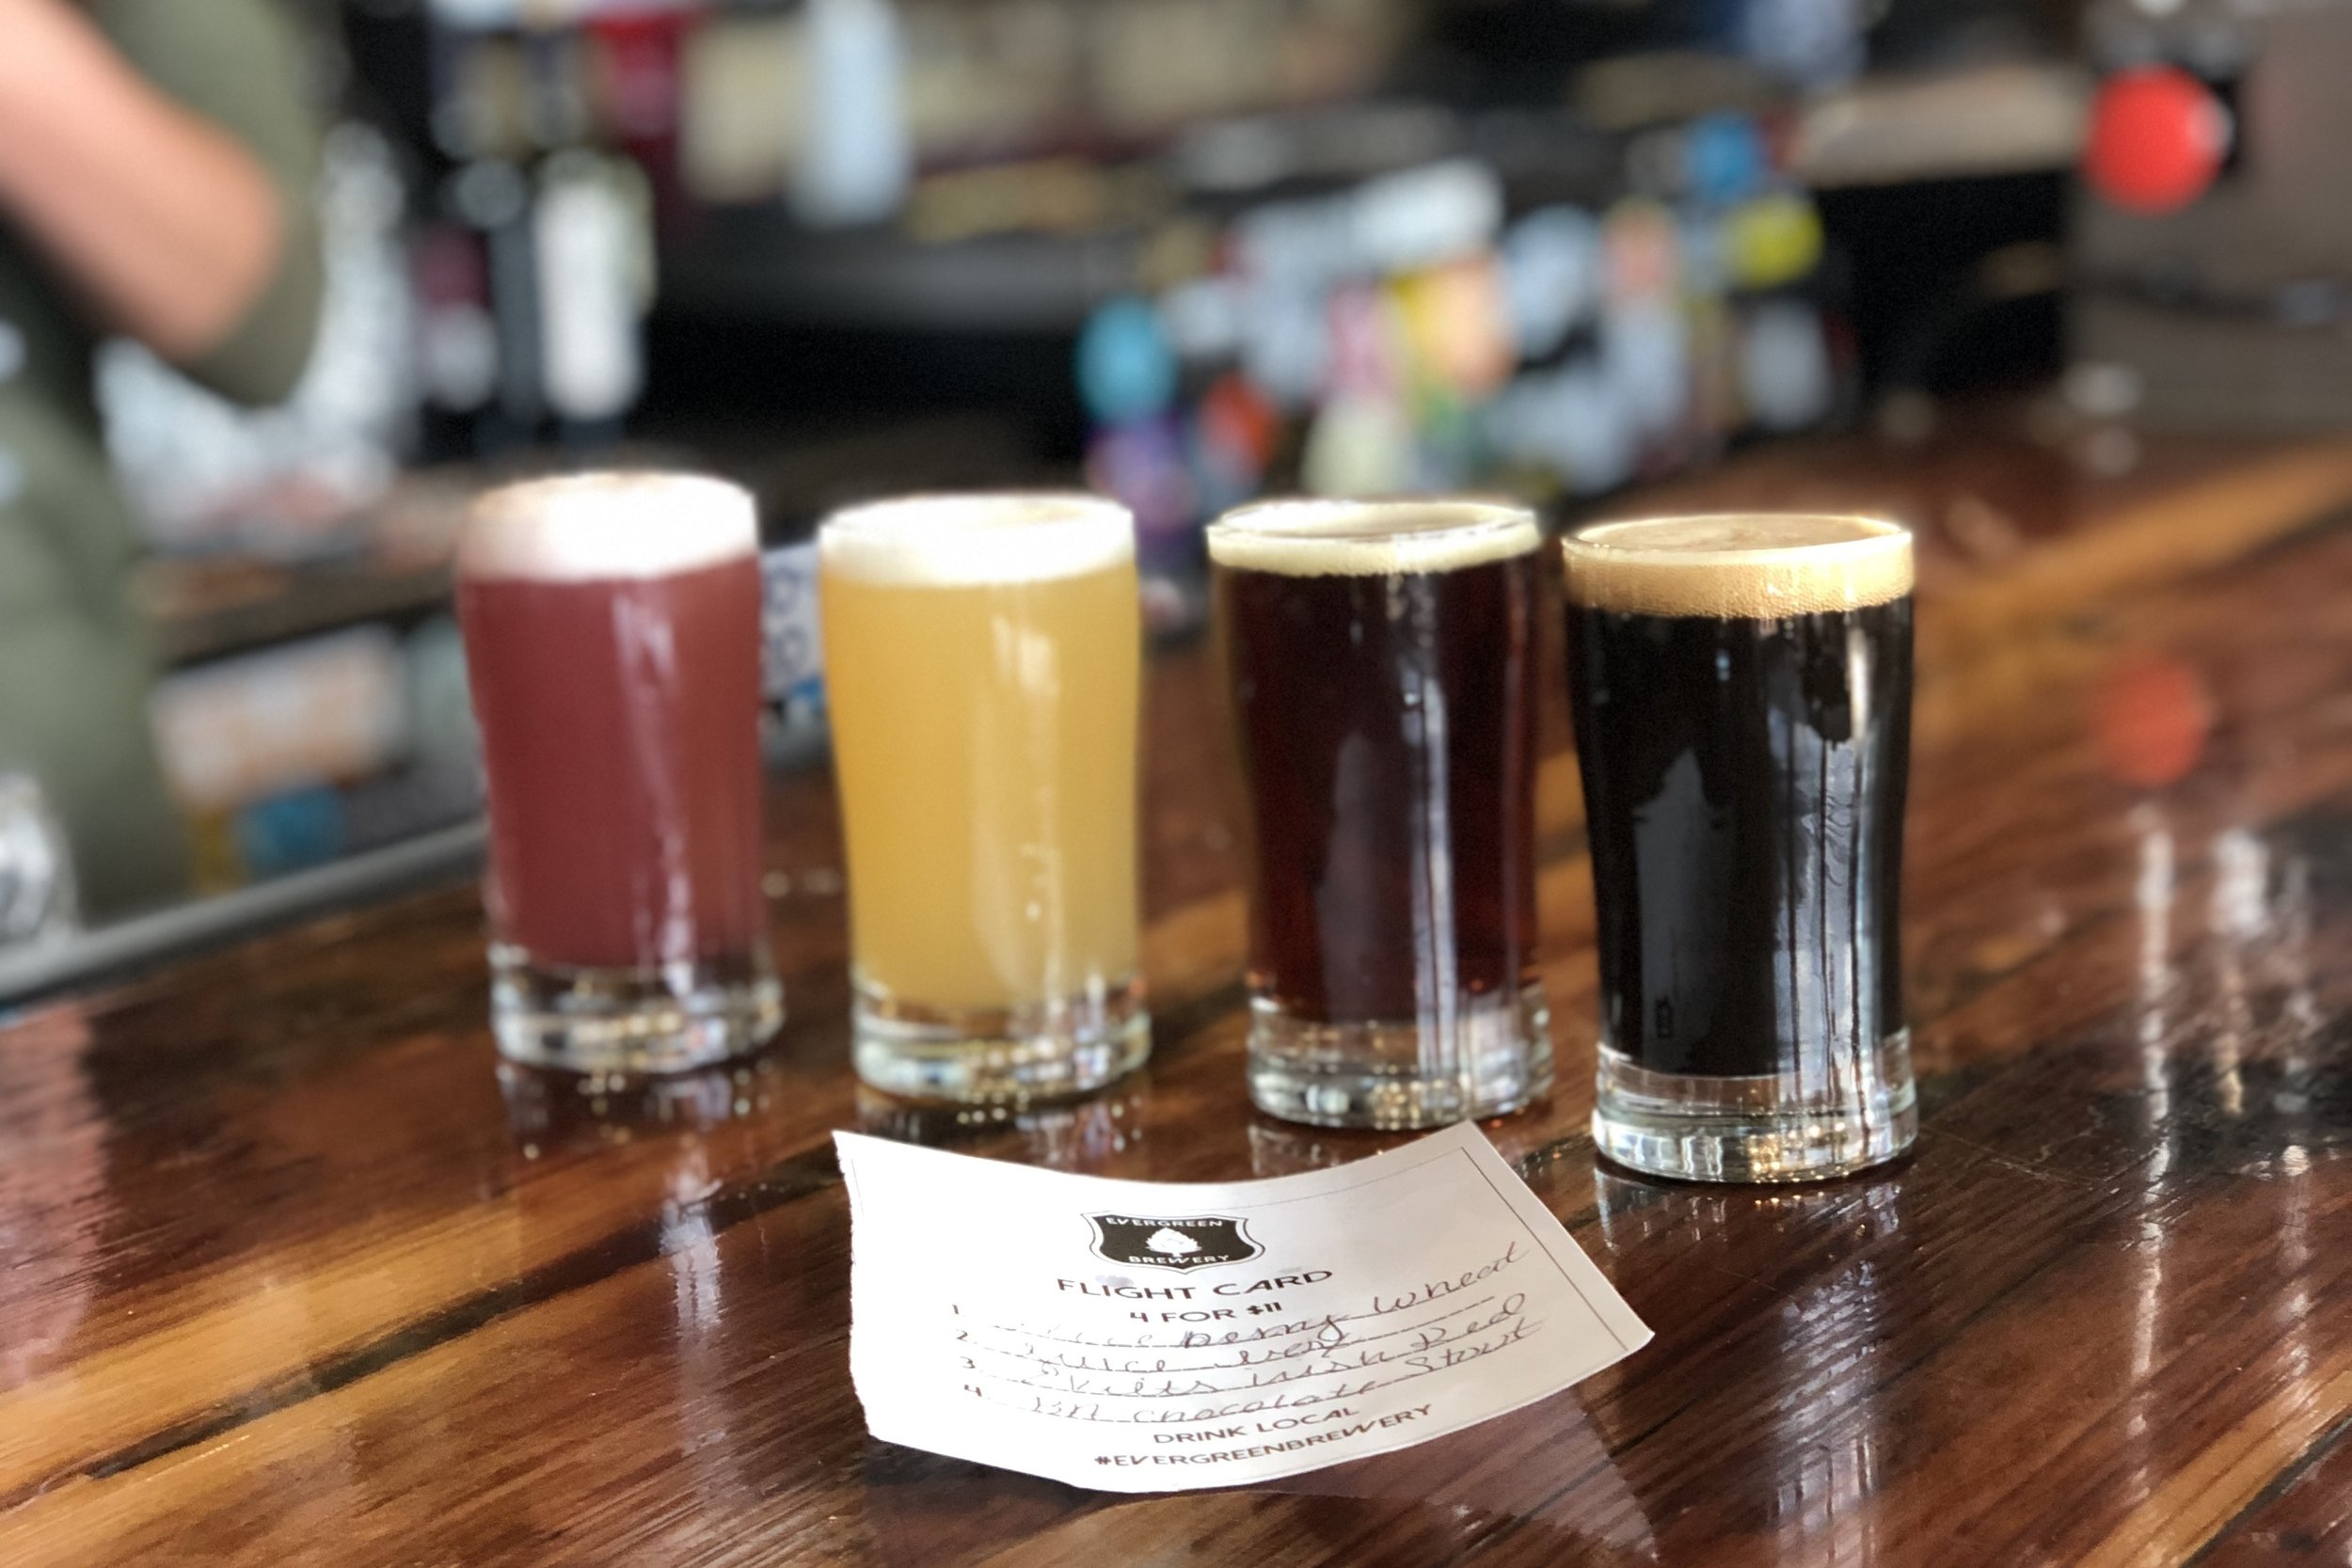 Try a flight of 4 brews for only $11 at Evergreen Brewery! ©Suzanne Brown 2019